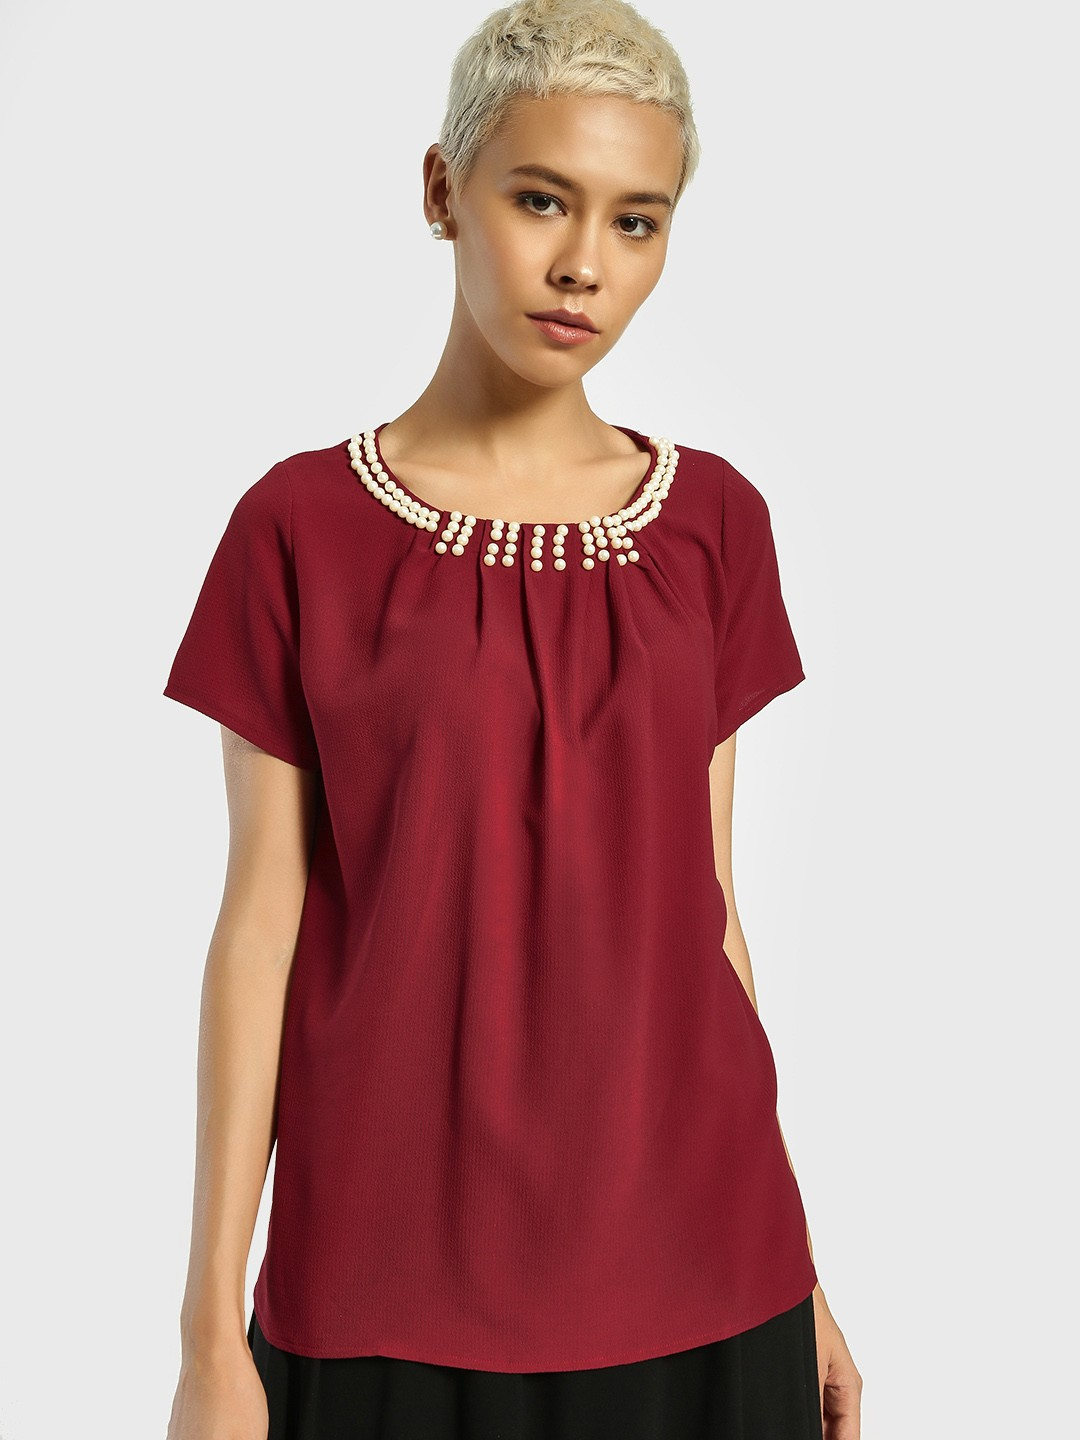 Privy League Maroon Pearl Embellished Neck Blouse 1